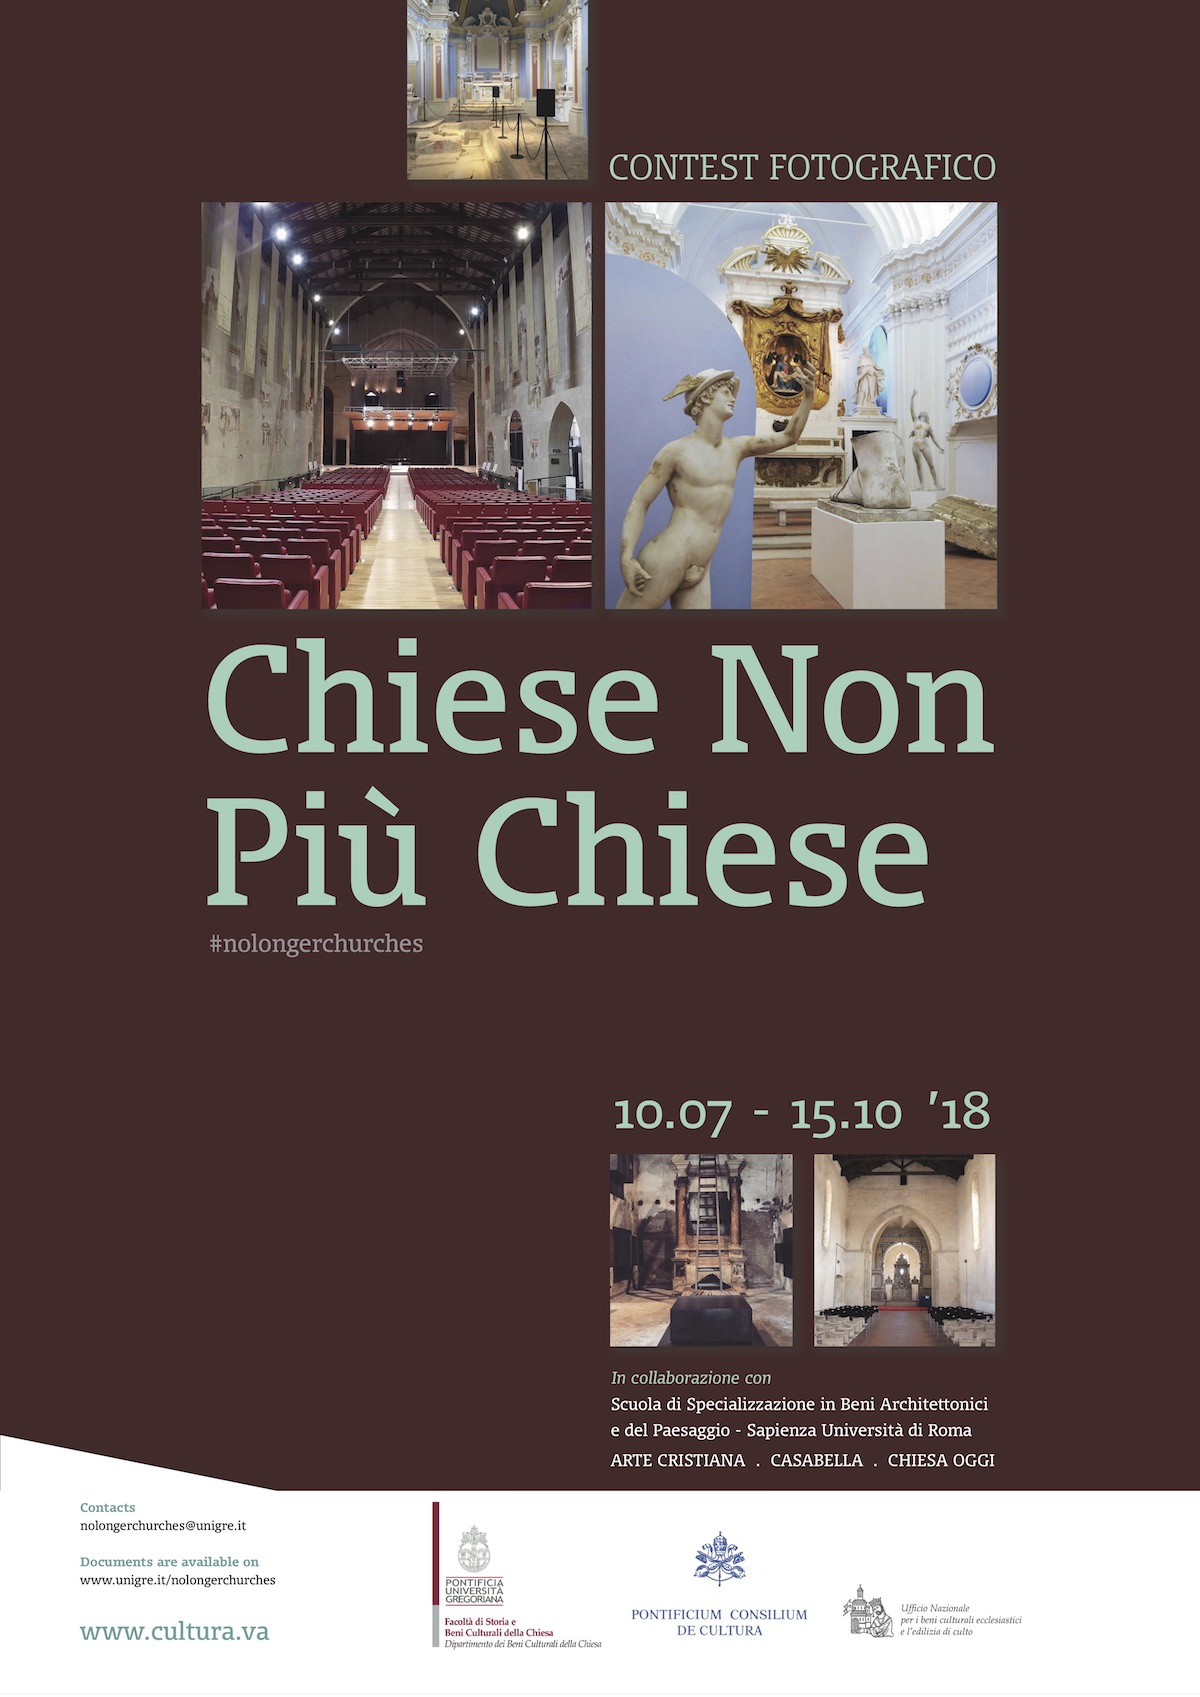 Chiese Non Più Chiese